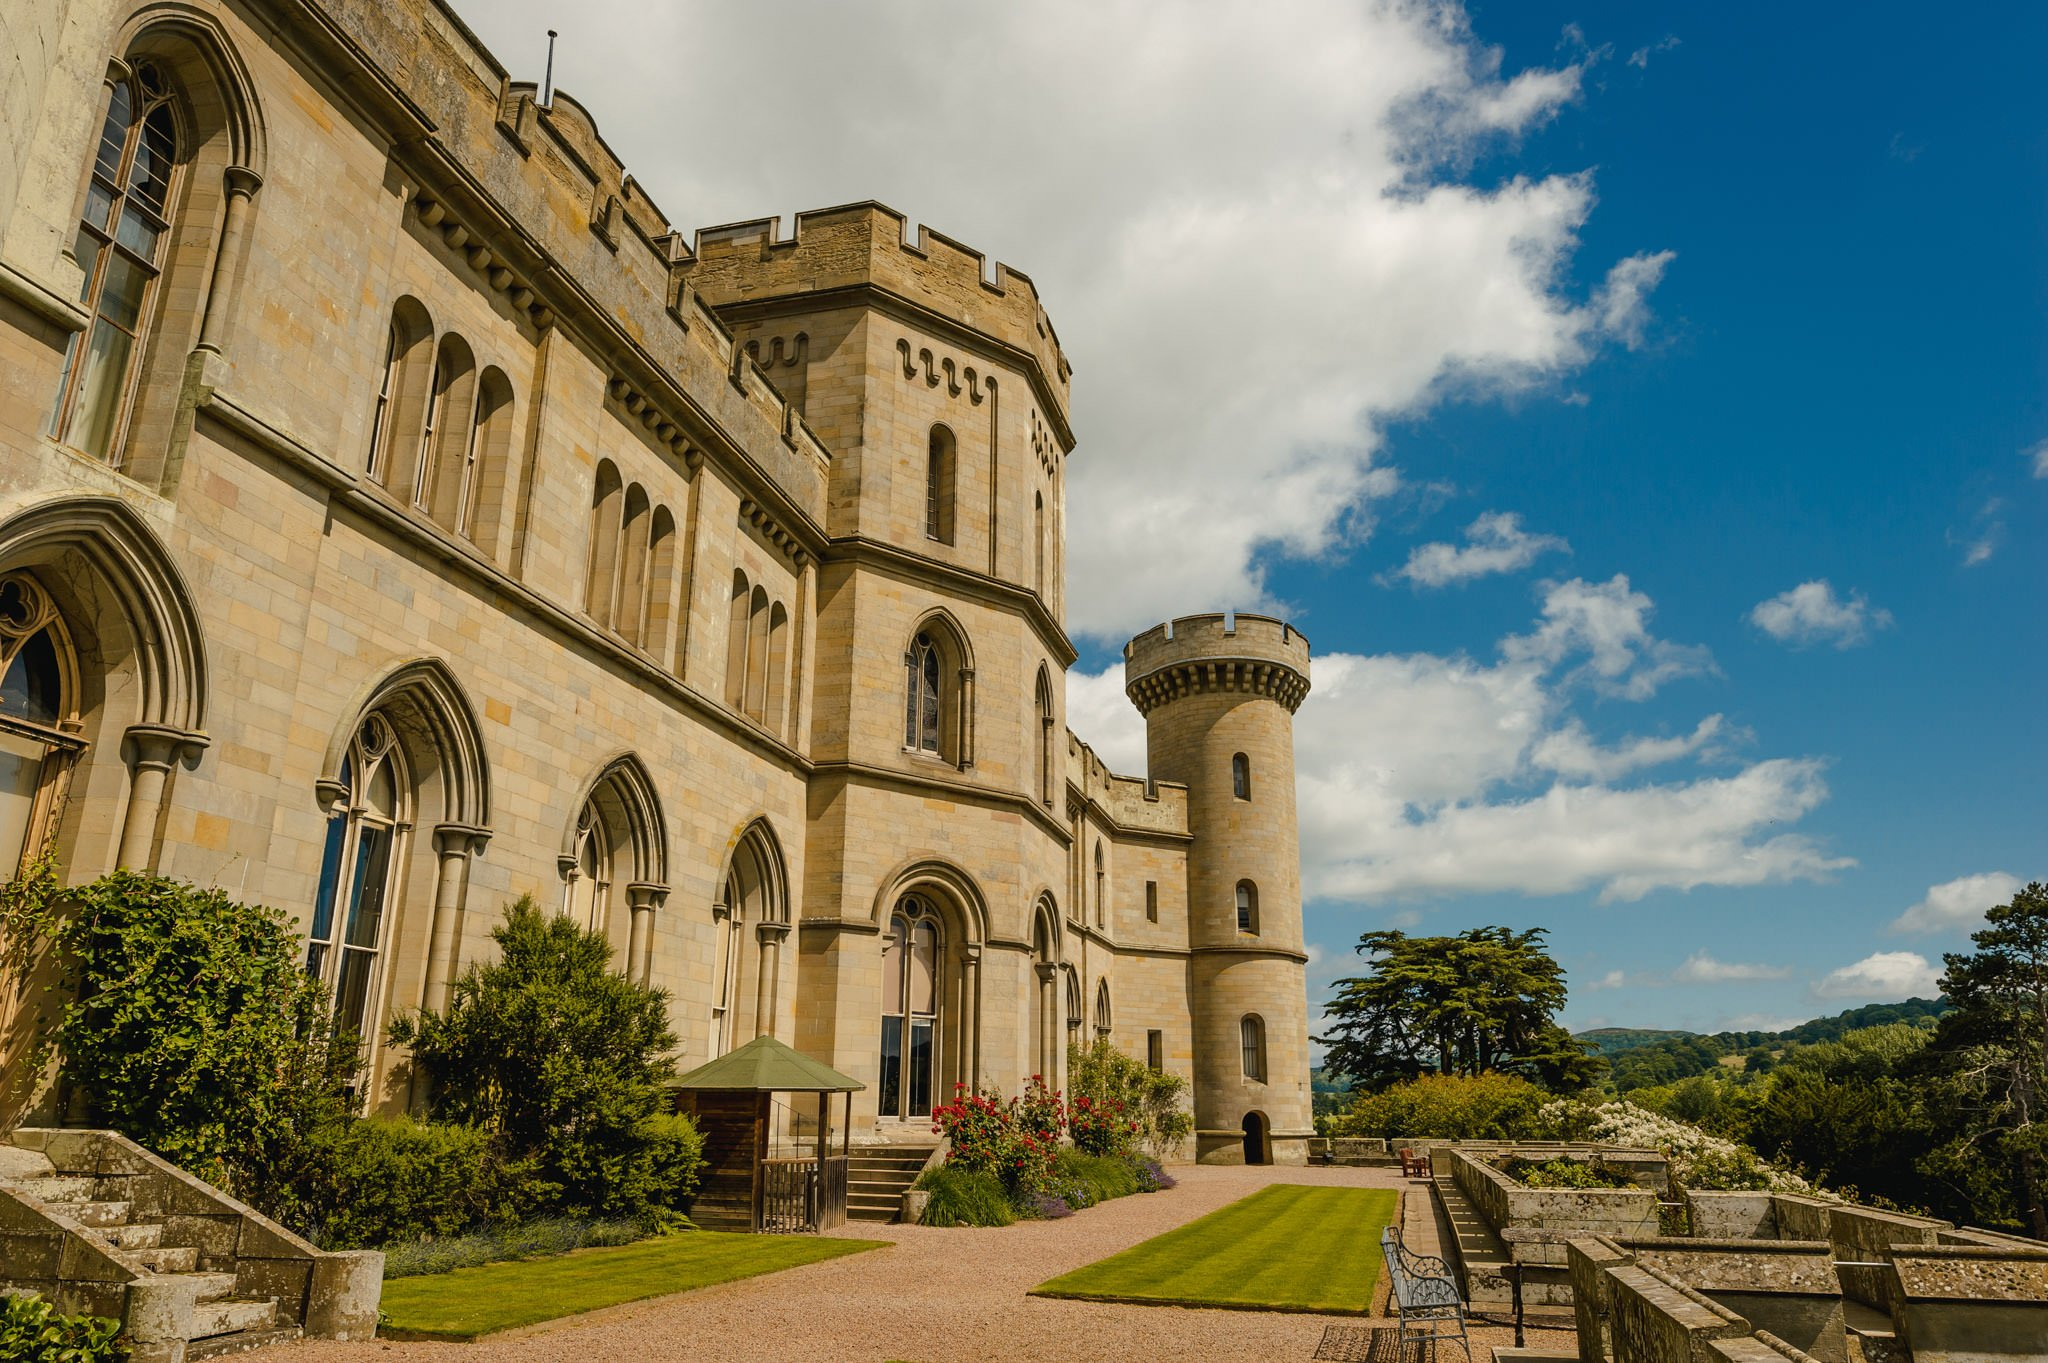 eastnor castle wedding pictures 12 - Eastnor Castle wedding photographer Herefordshire, West Midlands - Sarah + Dean